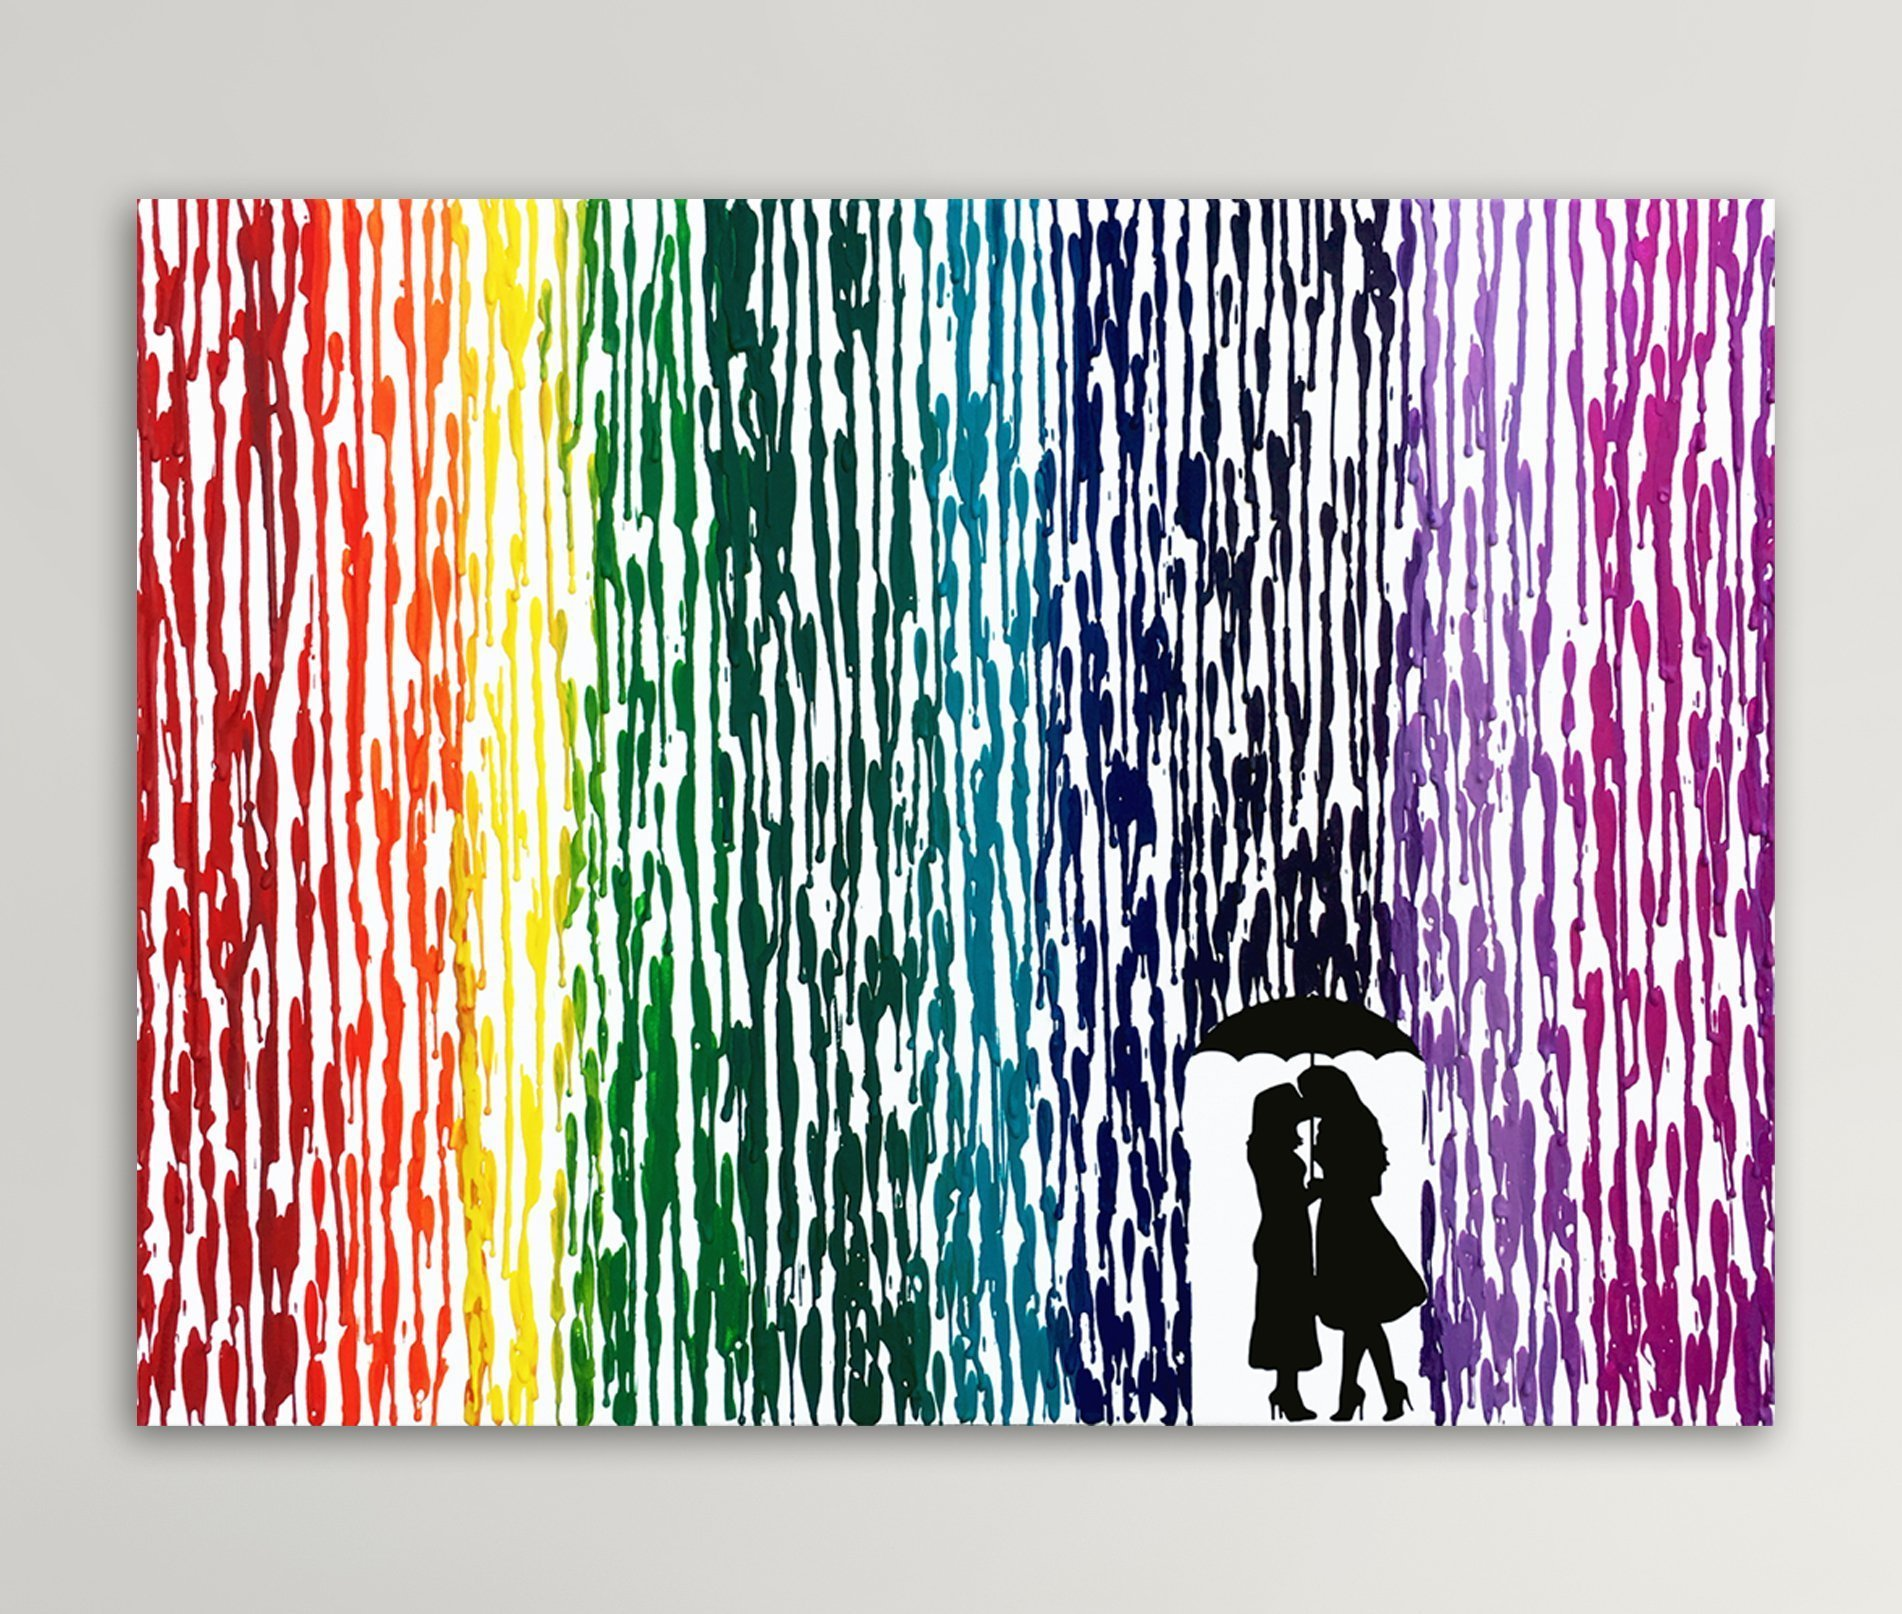 Girl Silhouette Art, Girl Couple Gift, Lesbian Wedding Gift, Melted Crayon Art, LGBT Art, Gifts For Lesbian Couples 16x20''